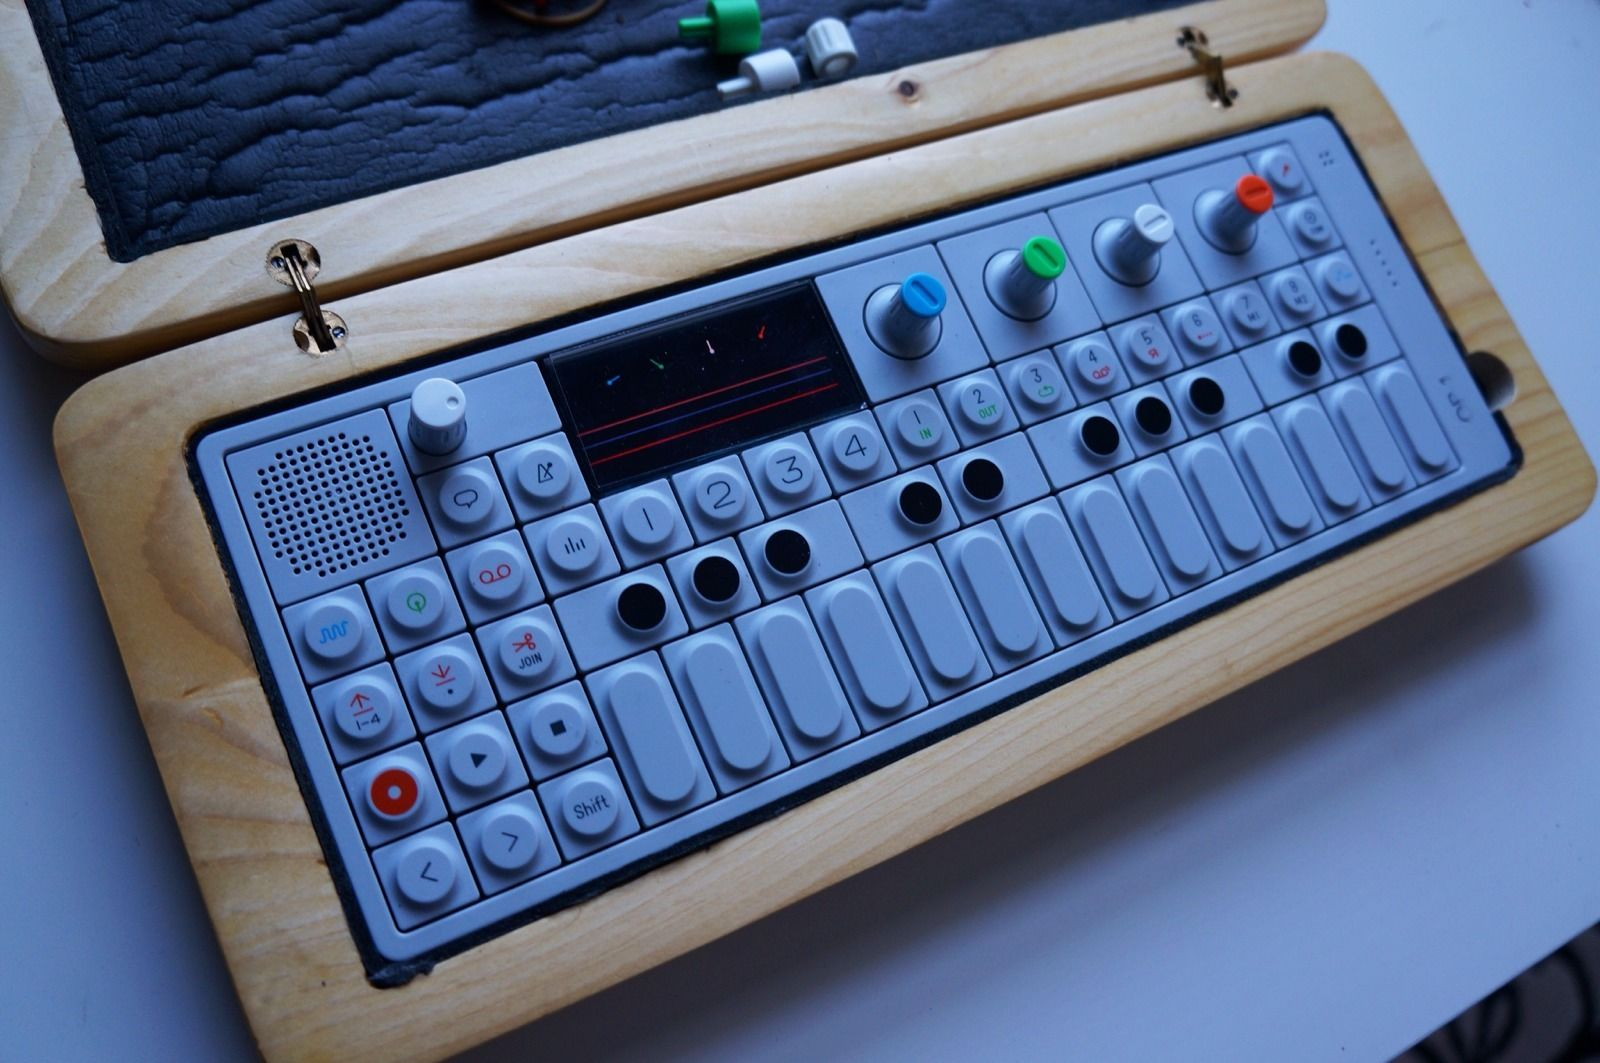 matrixsynth teenage engineering op 1 digital synthesizer sampler w wooden case. Black Bedroom Furniture Sets. Home Design Ideas